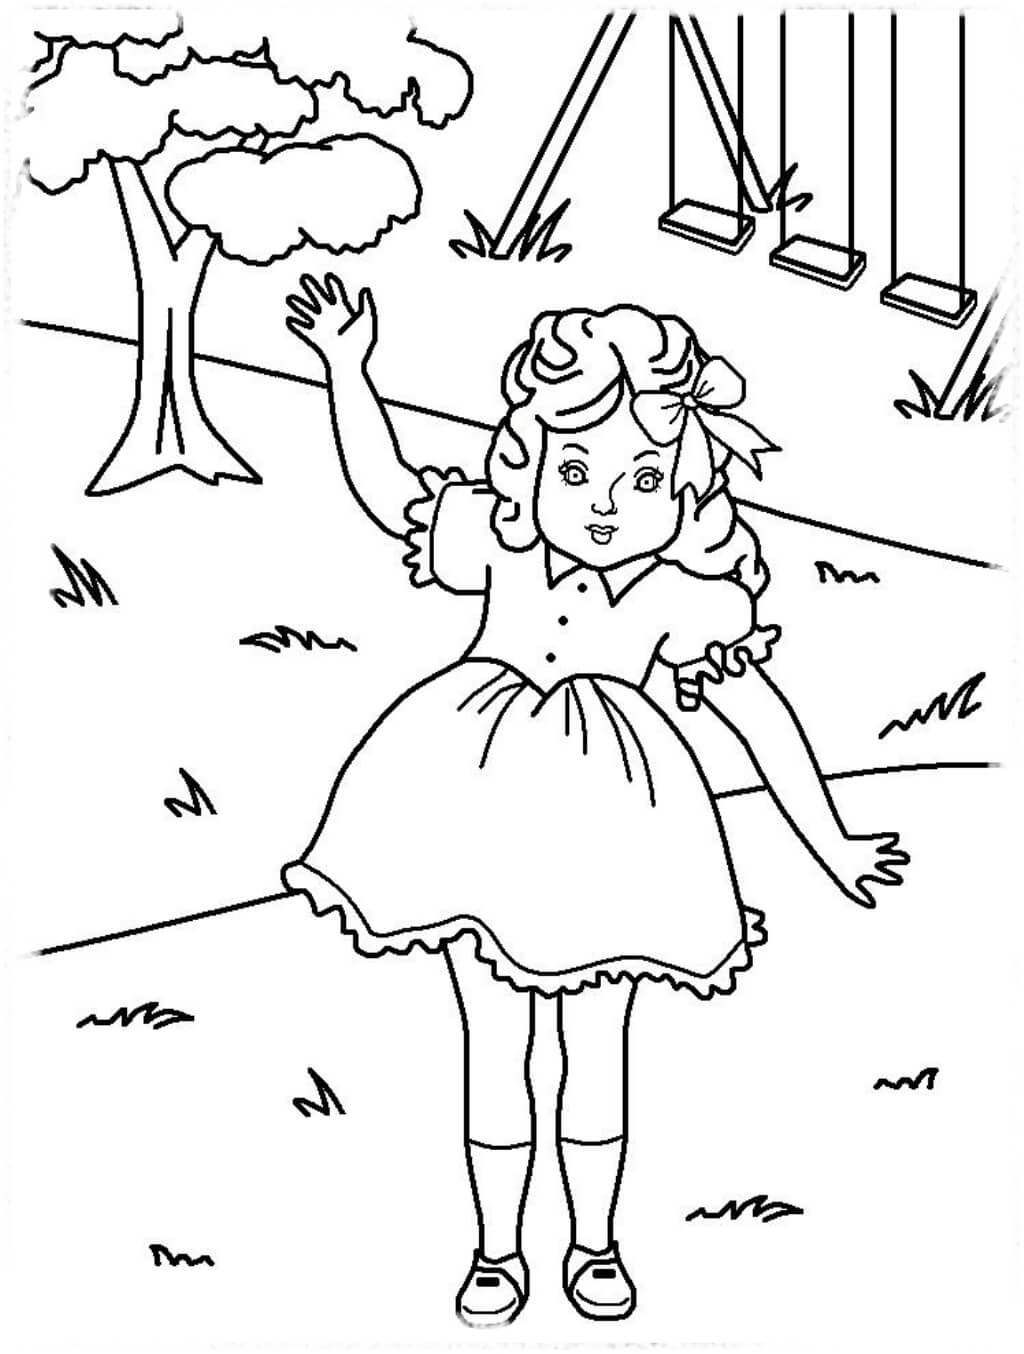 american girl doll coloring pages to print american girl doll coloring pages printable activity shelter american girl print to doll pages coloring